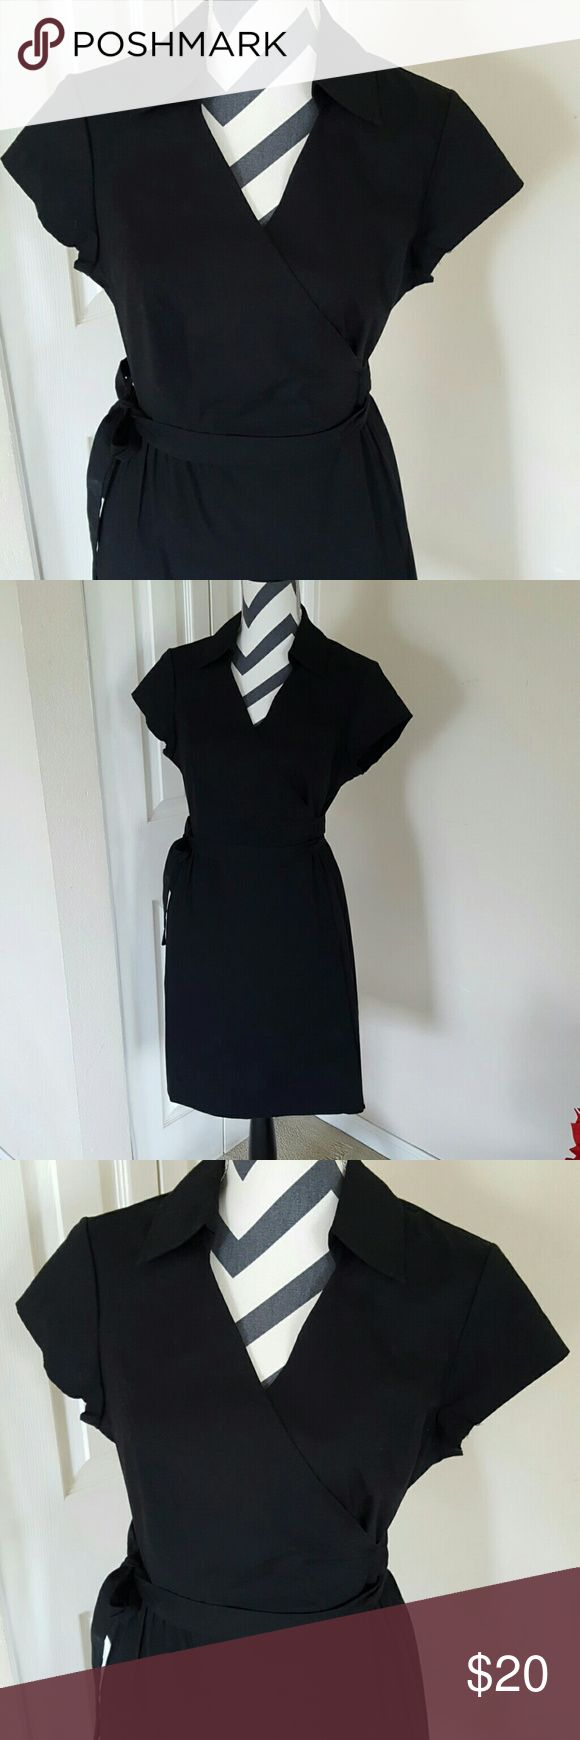 """Black Wrap Dress Brand new, never worn. Has tags 97% cotton, 3% spandex Has a little stretch to it Little bit of dust on a piece of a strap, but might come out in the wash About 18"""" from underarm to underarm About 37"""" from top of shoulder to hem No trades, holds, or Paypal Merona Dresses"""